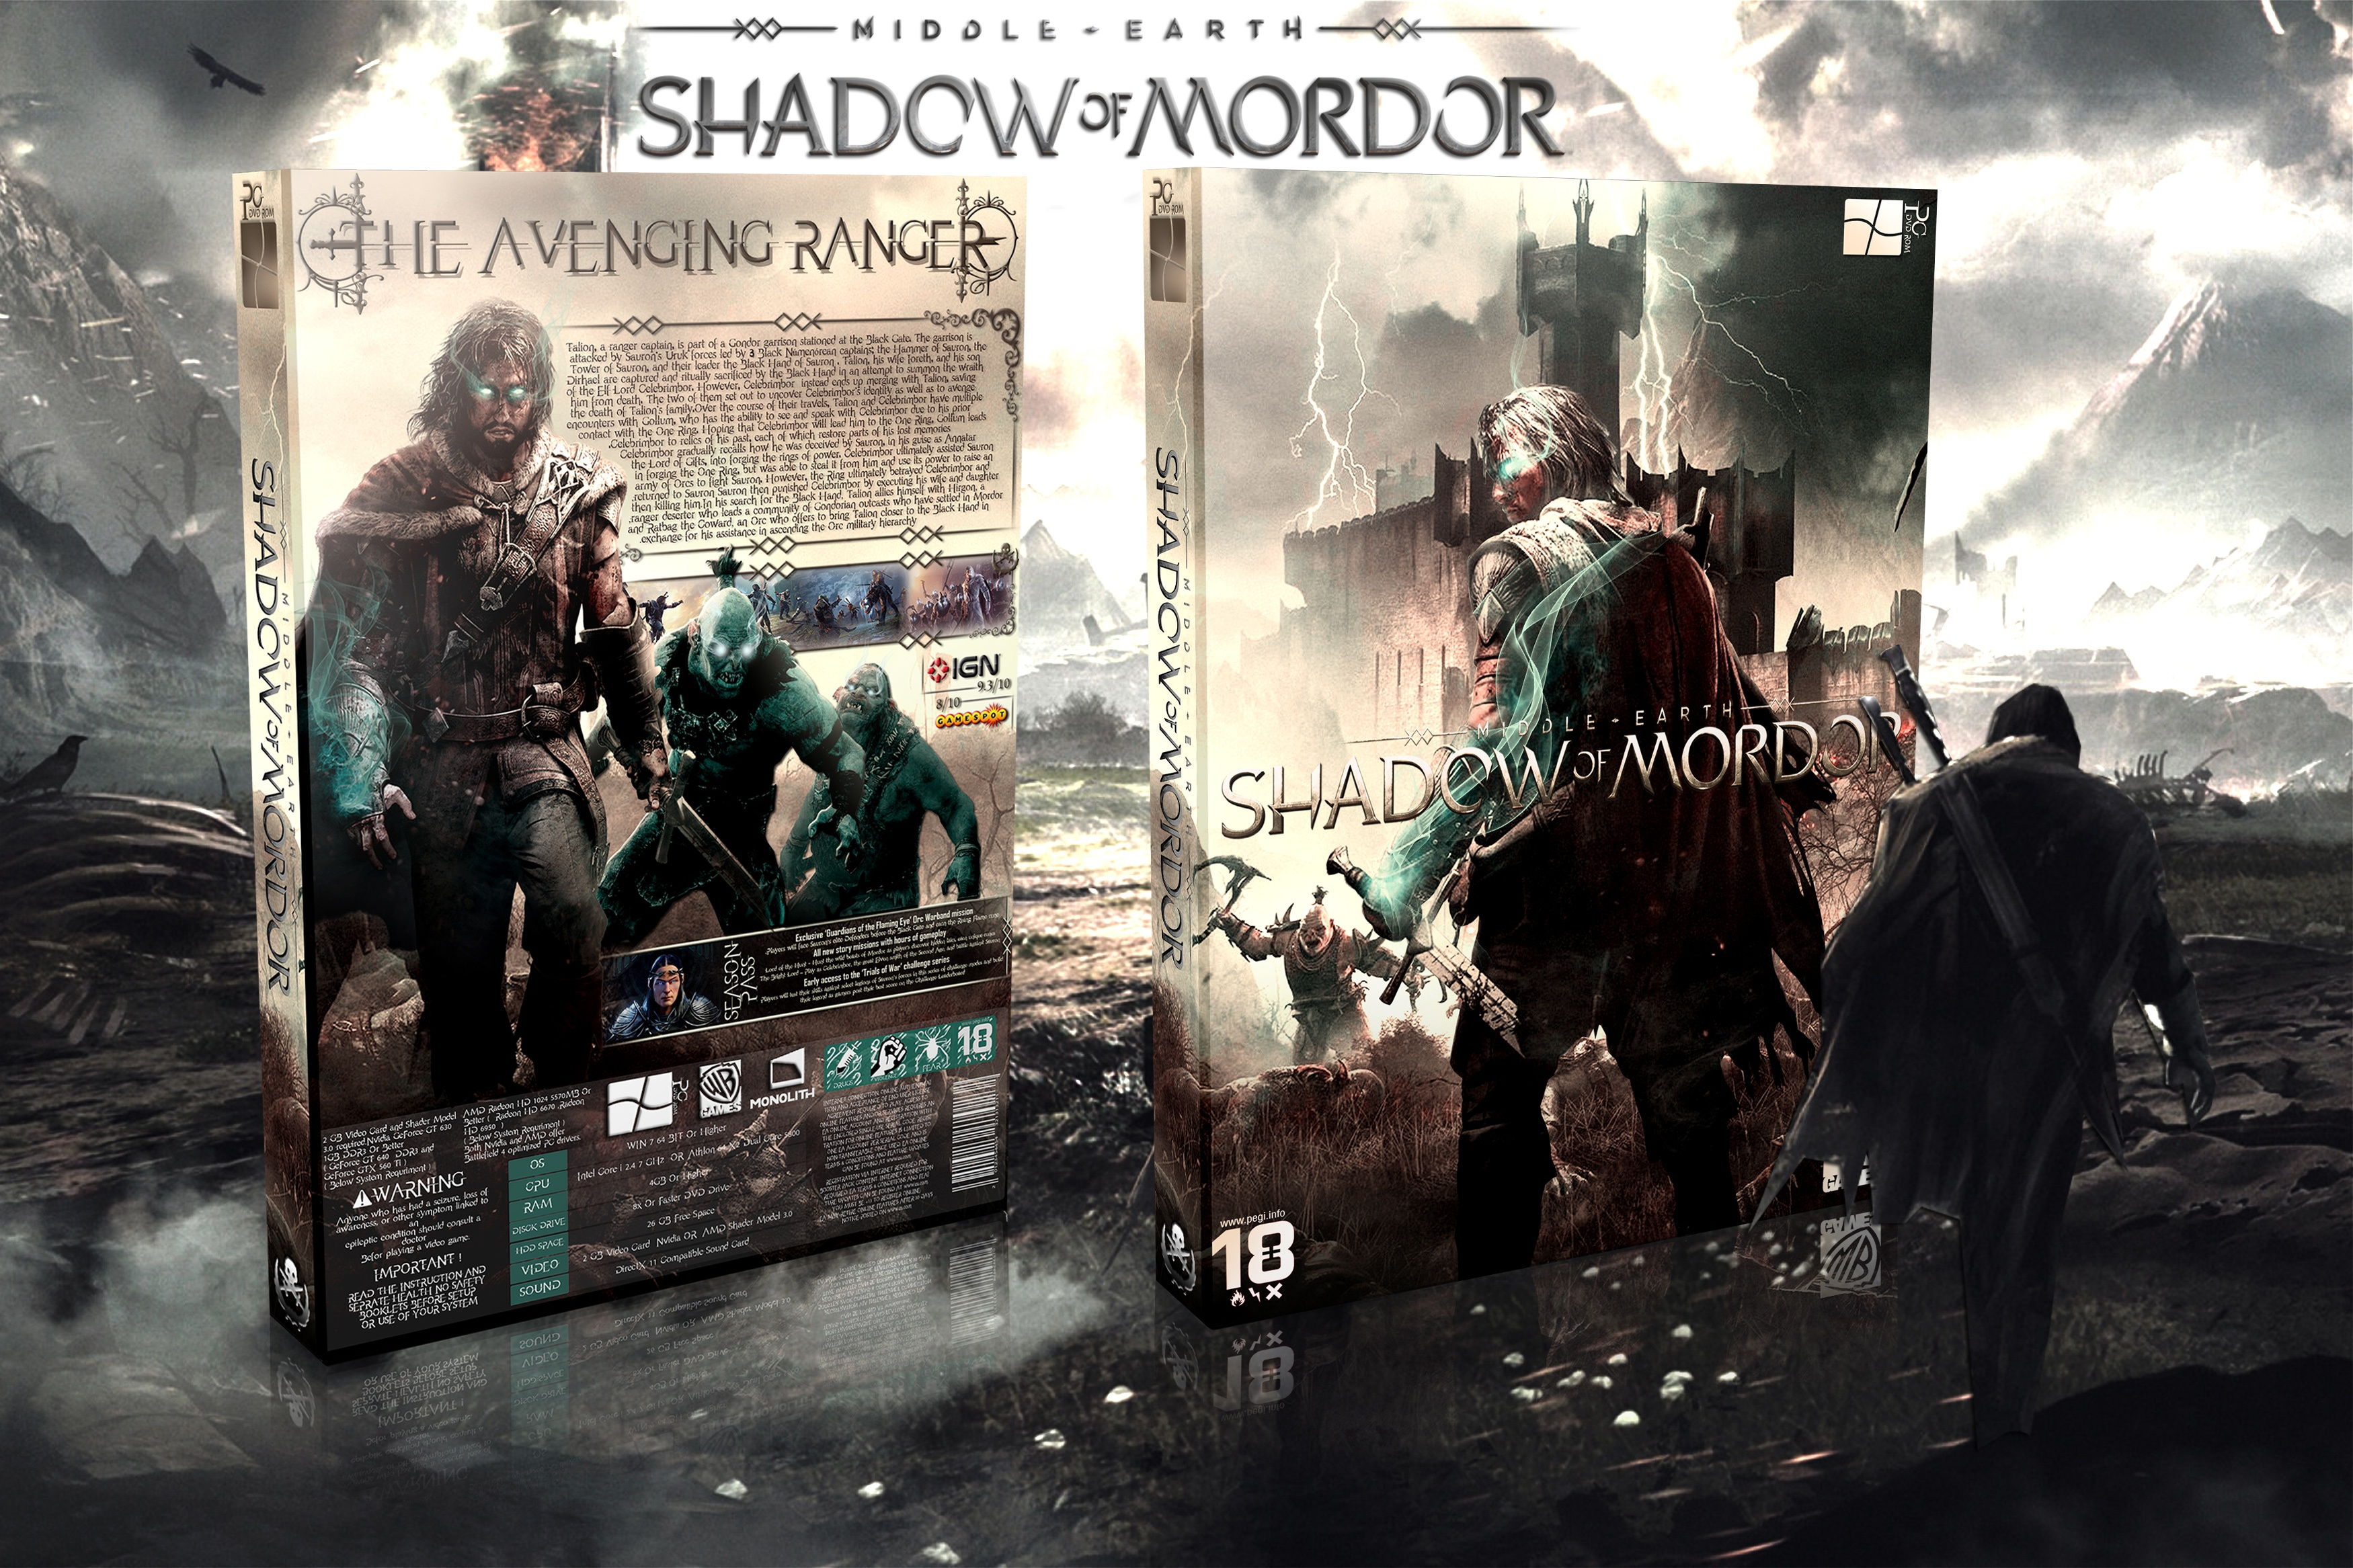 Middle-earth: Shadow of Mordor box cover